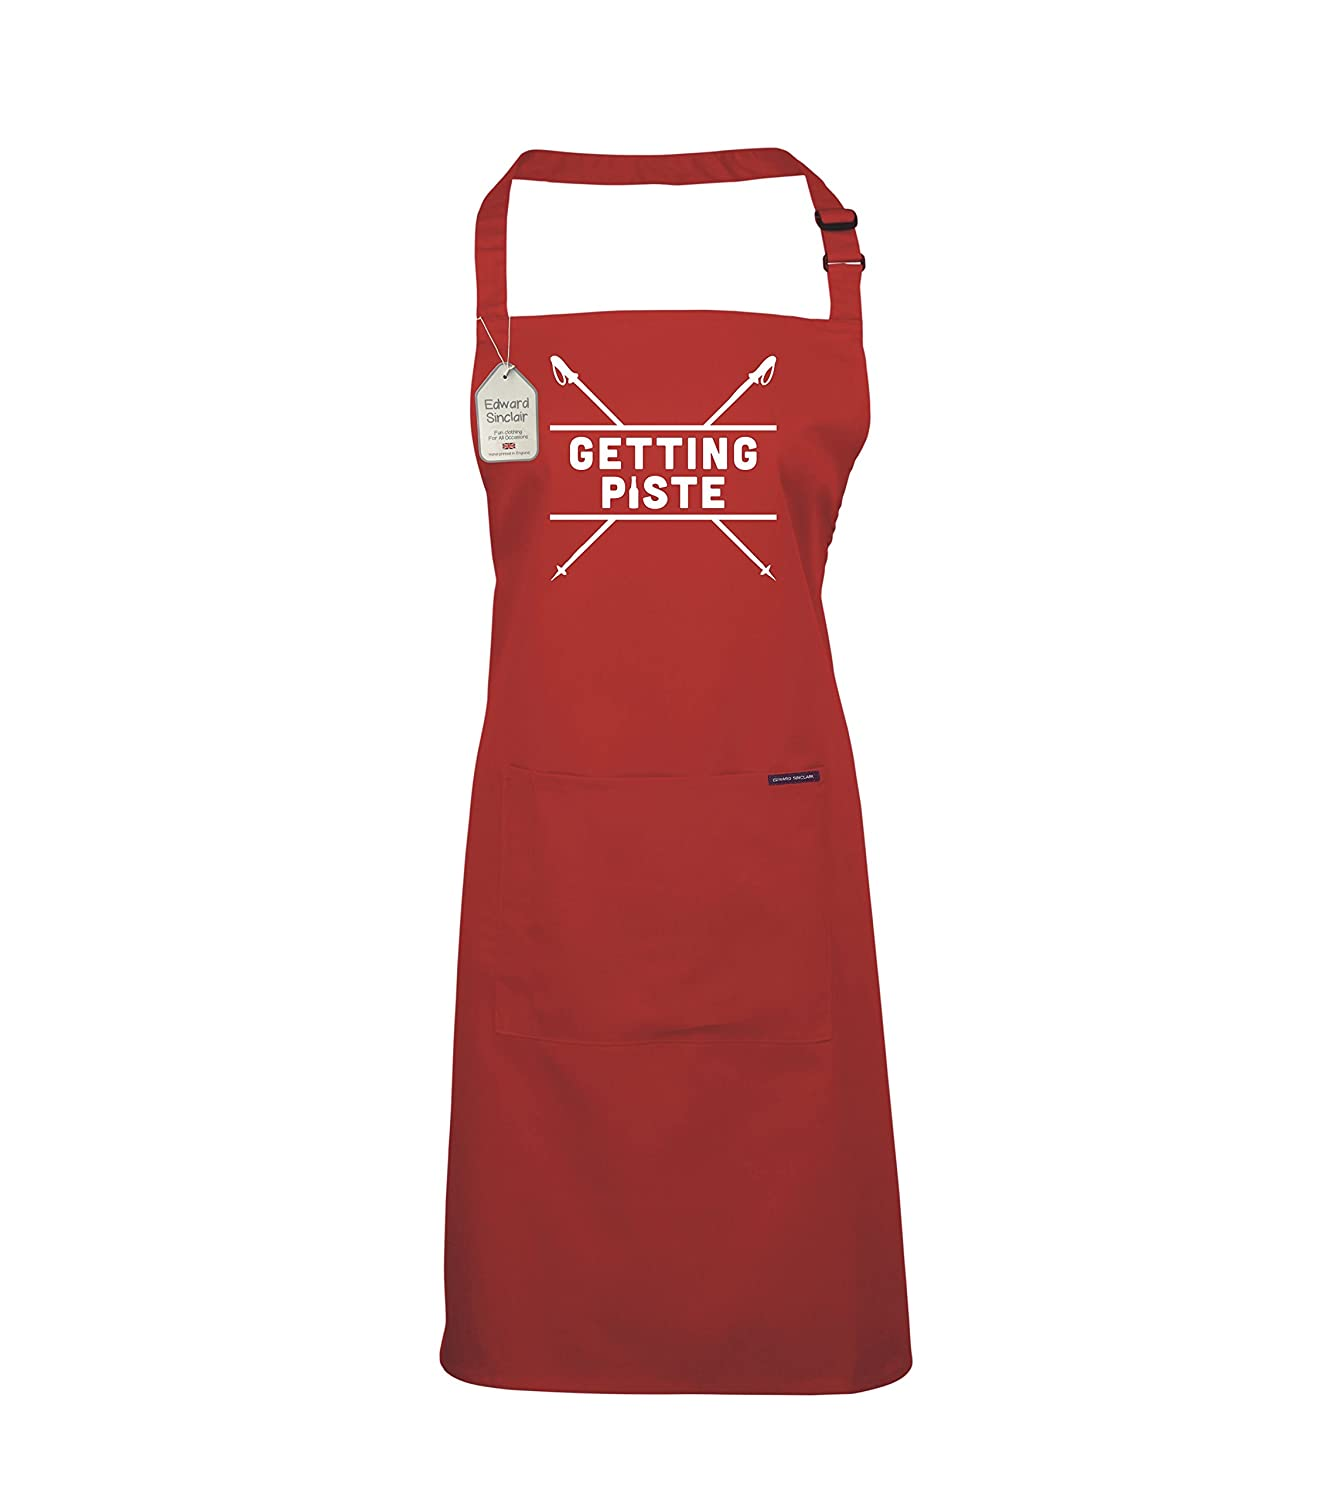 Edward Sinclair Getting Piste - Cooking Apron, BBQ Apron, Christmas Gift, Ski Gift